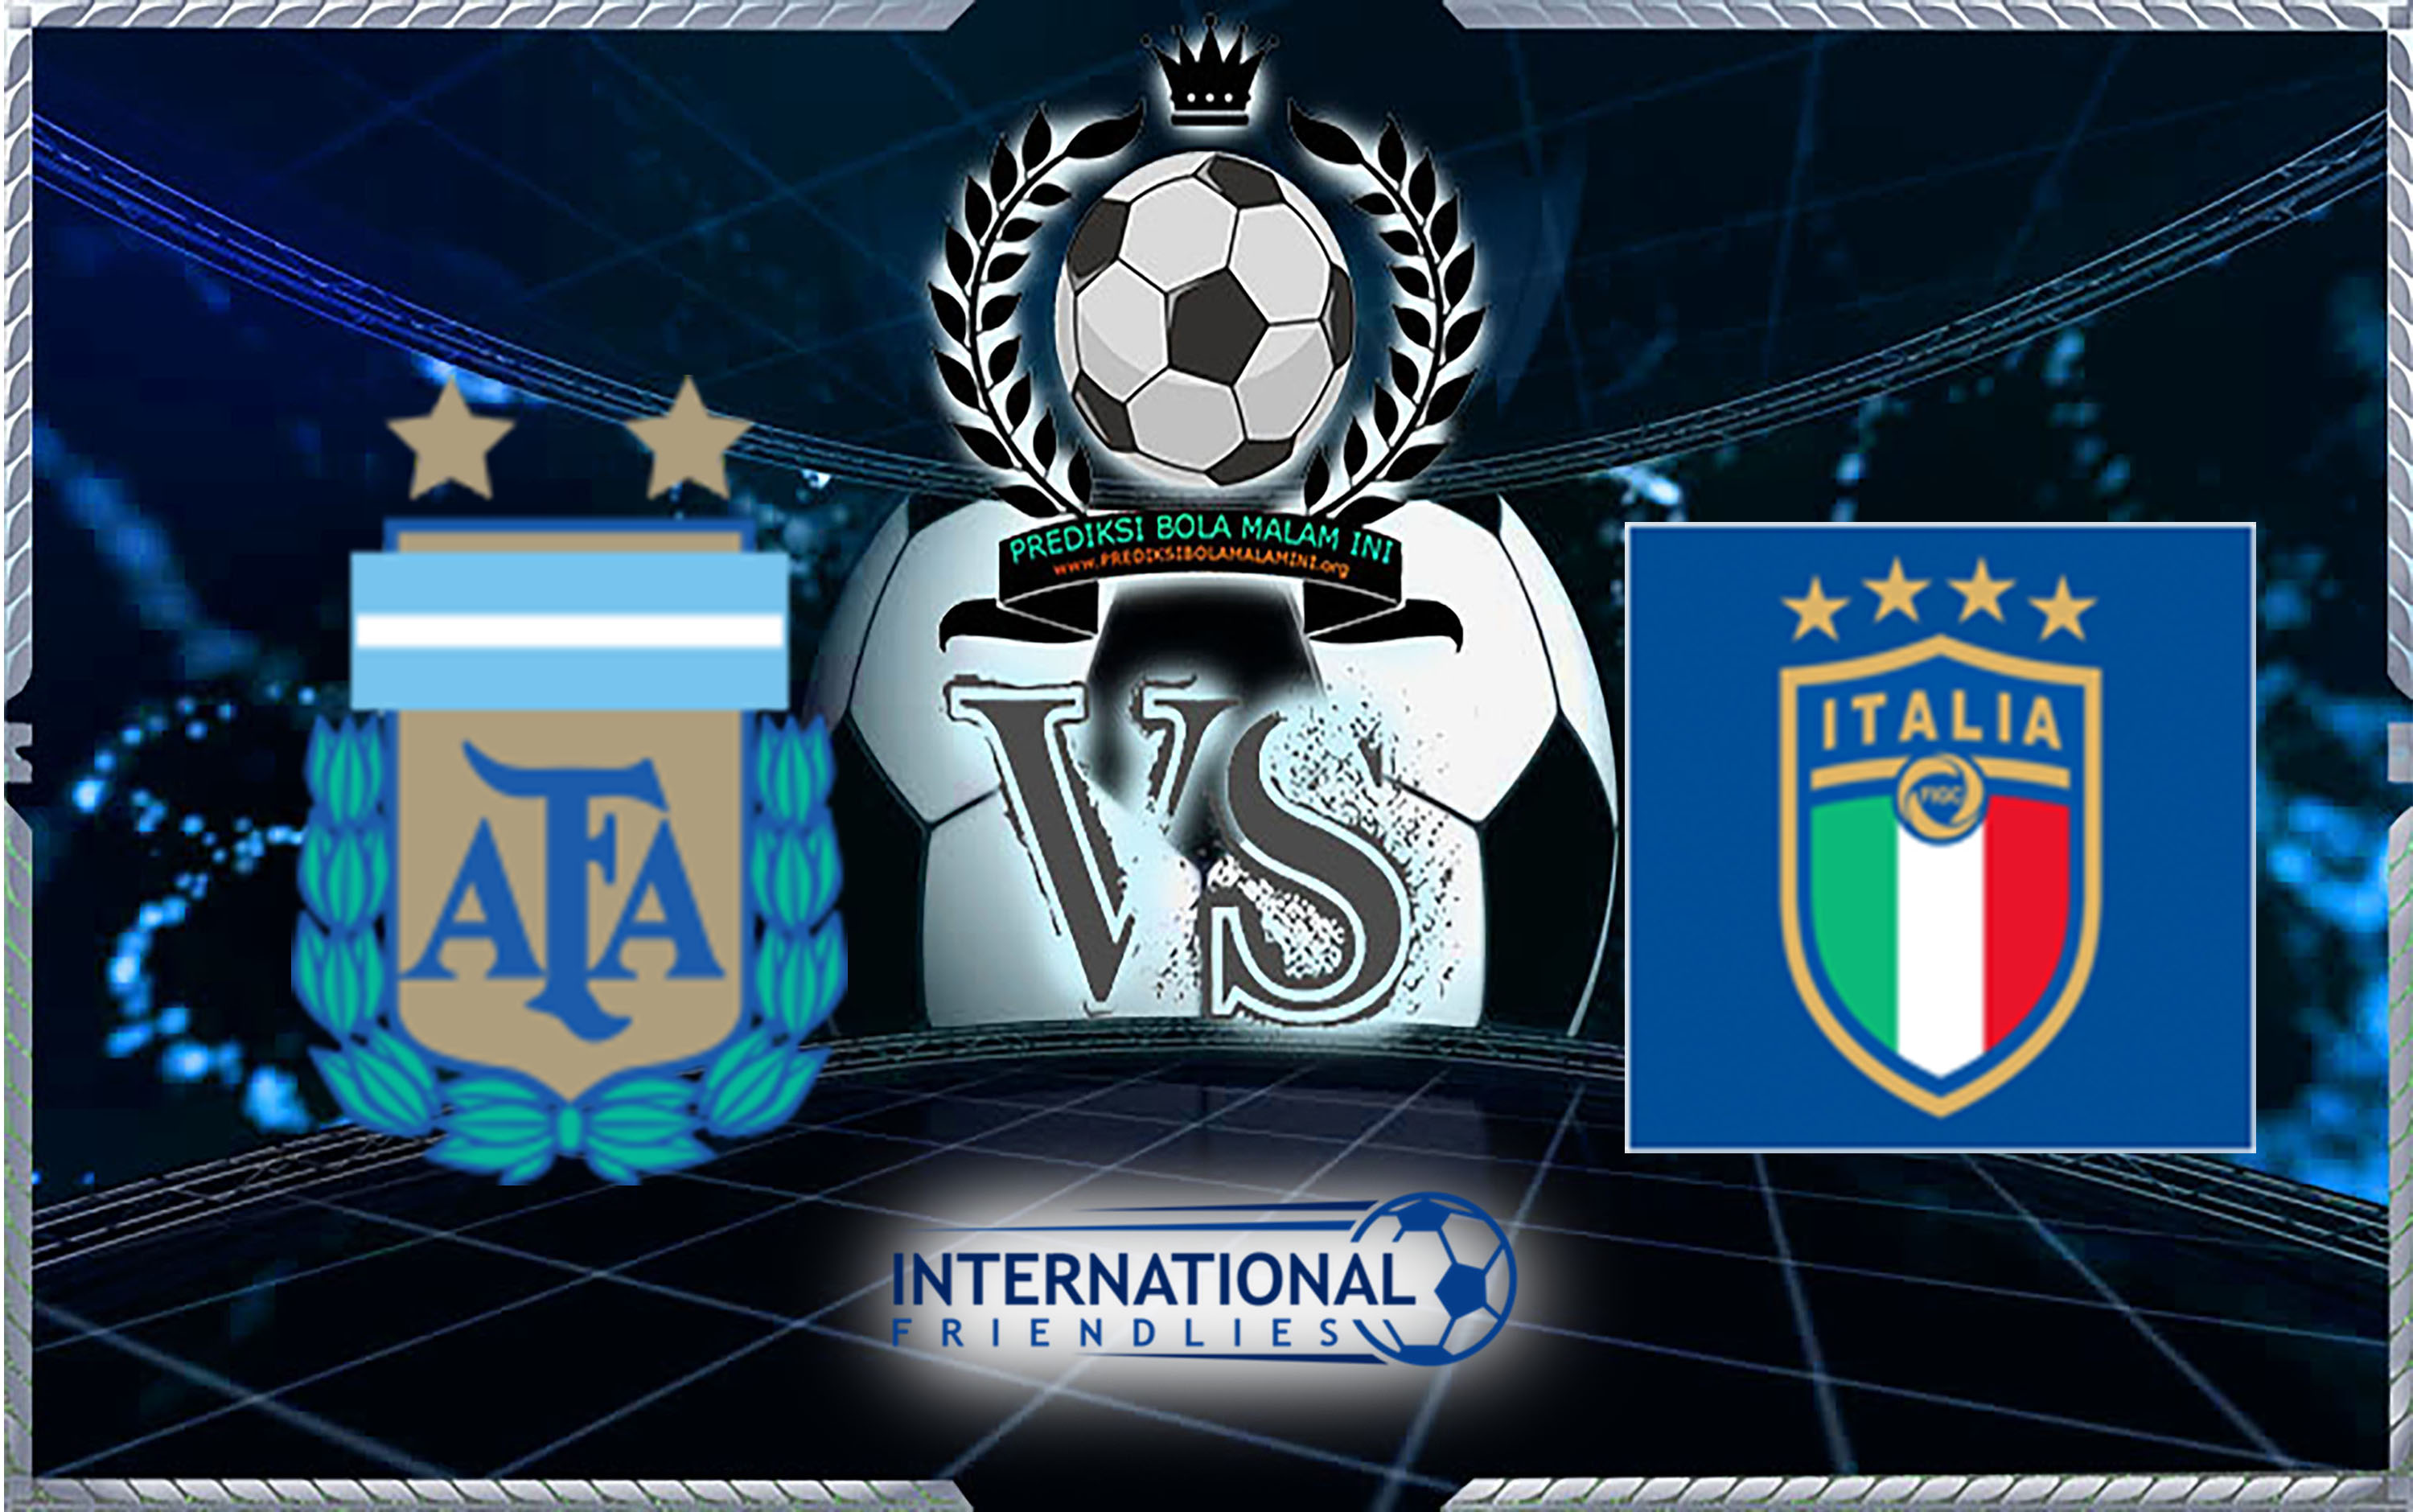 Prediksi Sepatu Argentina Vs Italy 24 Mar 2018 &quot;width =&quot; 640 &quot;height =&quot; 401 &quot;/&gt; </p> <p><strong> <span style=